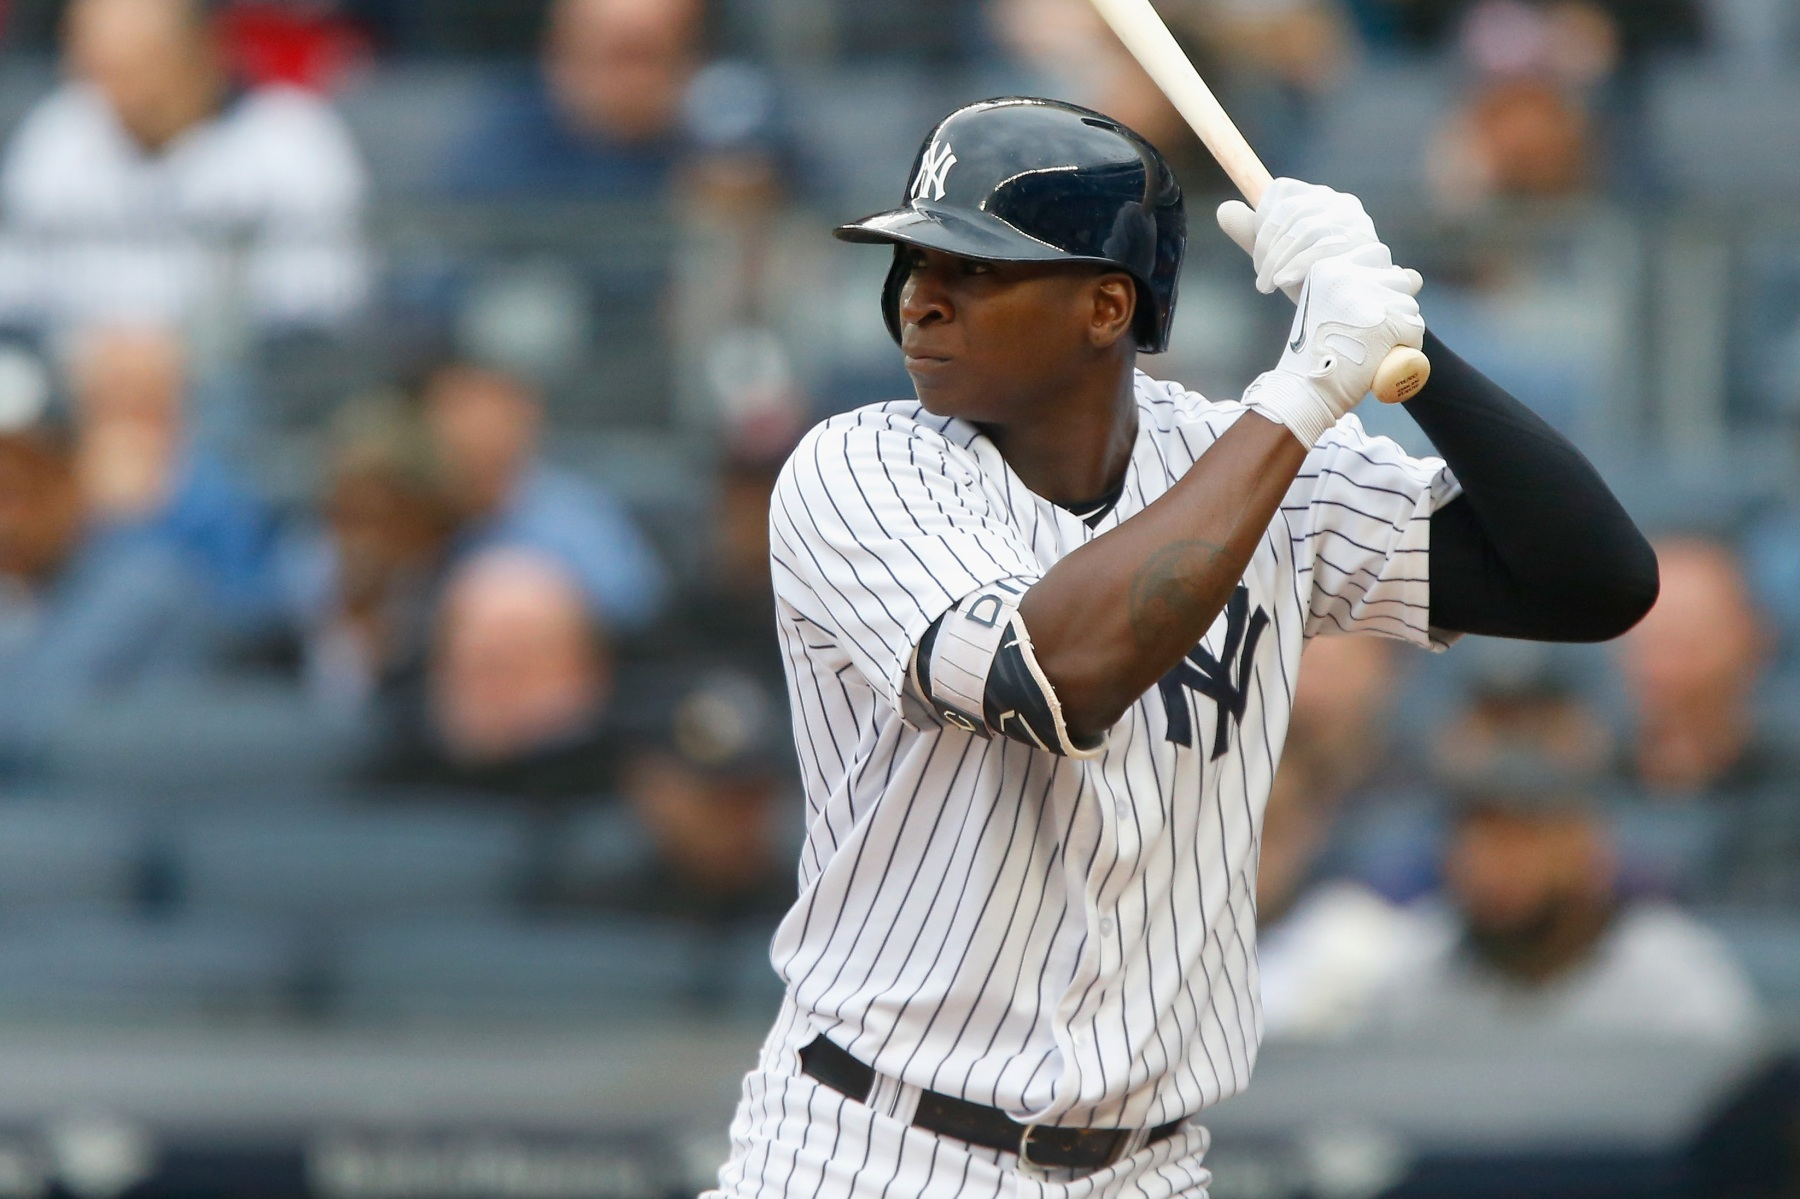 Didi Gregorius #18 of the New York Yankees in action against the Oakland Athletics at Yankee Stadium on May 12, 2018 in the Bronx borough of New York City. The Yankees defeated the Athletics 7-6 in 11 innings. (Photo by Jim McIsaac/Getty Images)